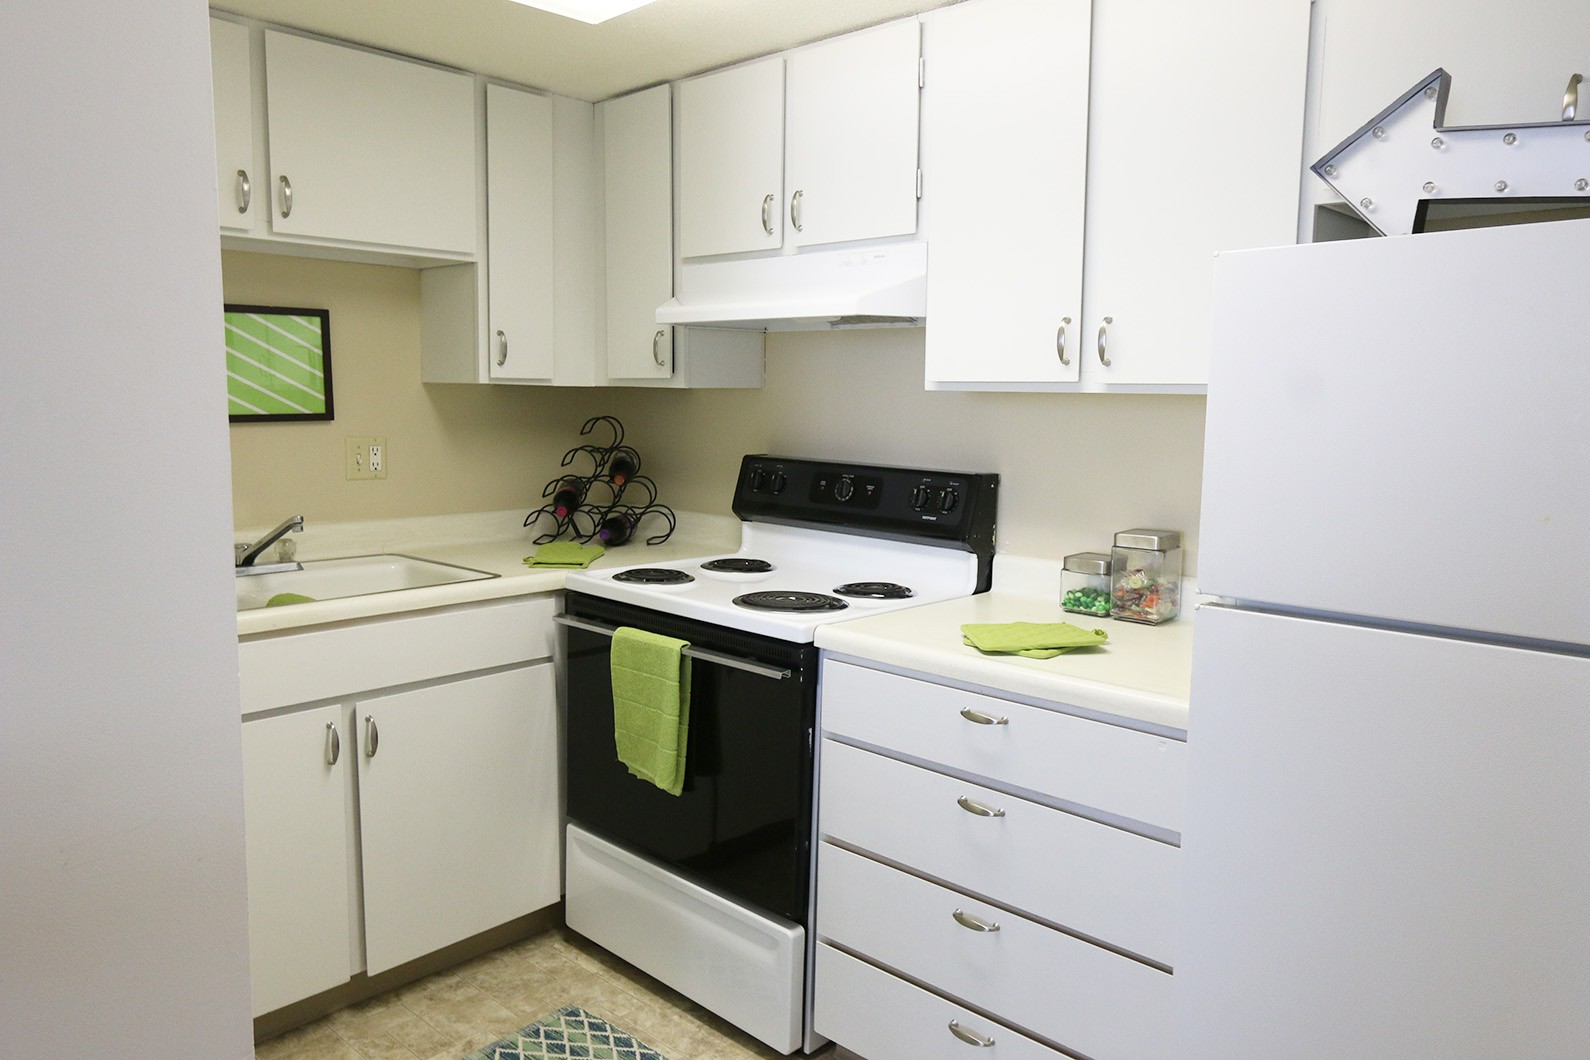 Apartments Near Bellevue Westbrook Tower Apartments - ONE MONTH FREE W/13 MONTH LEASE for Bellevue Students in Bellevue, NE